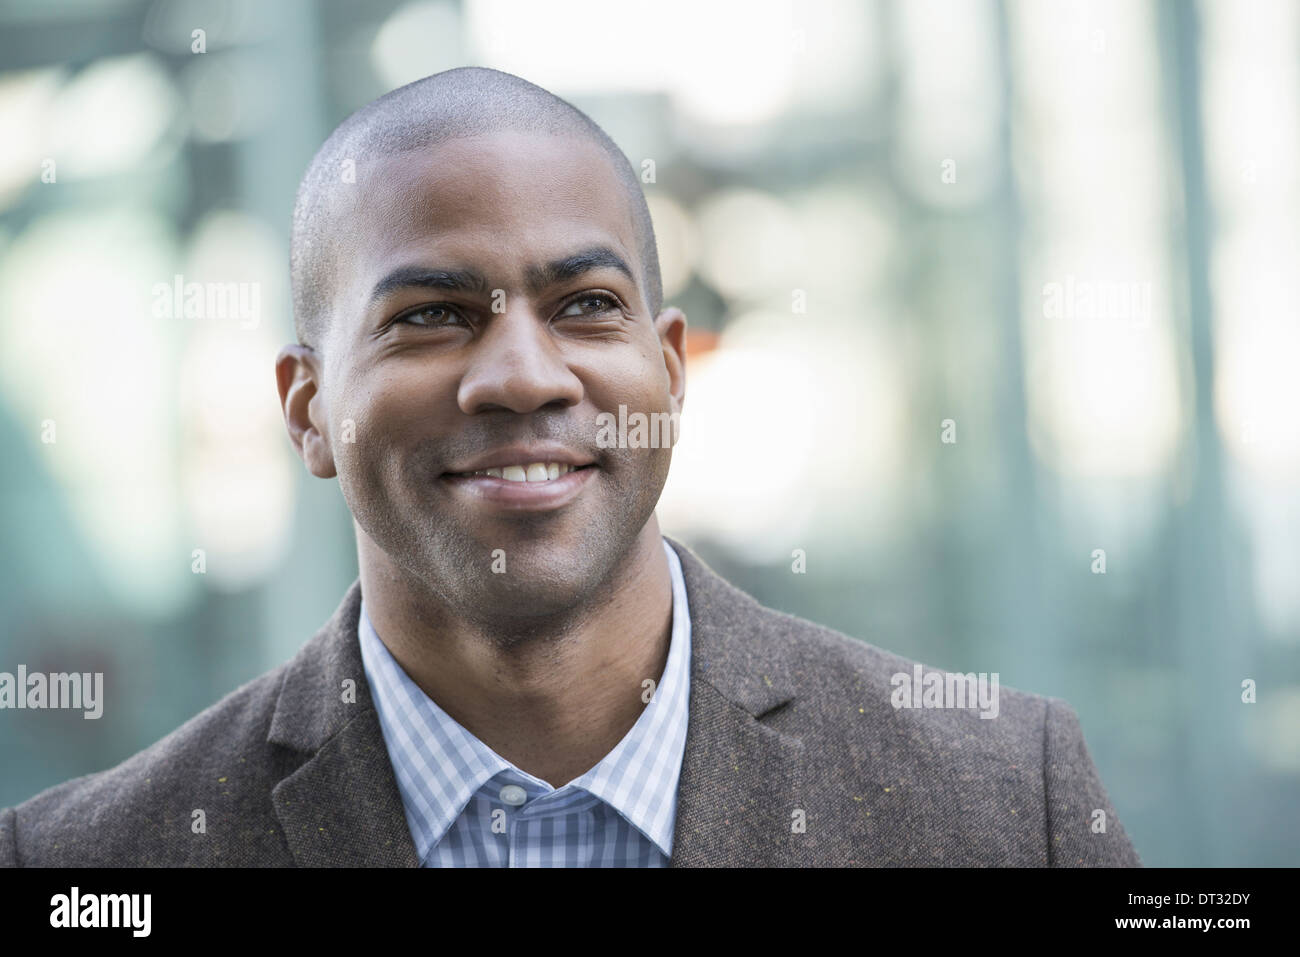 A man in jacket and tie smiling and looking into the distance - Stock Image